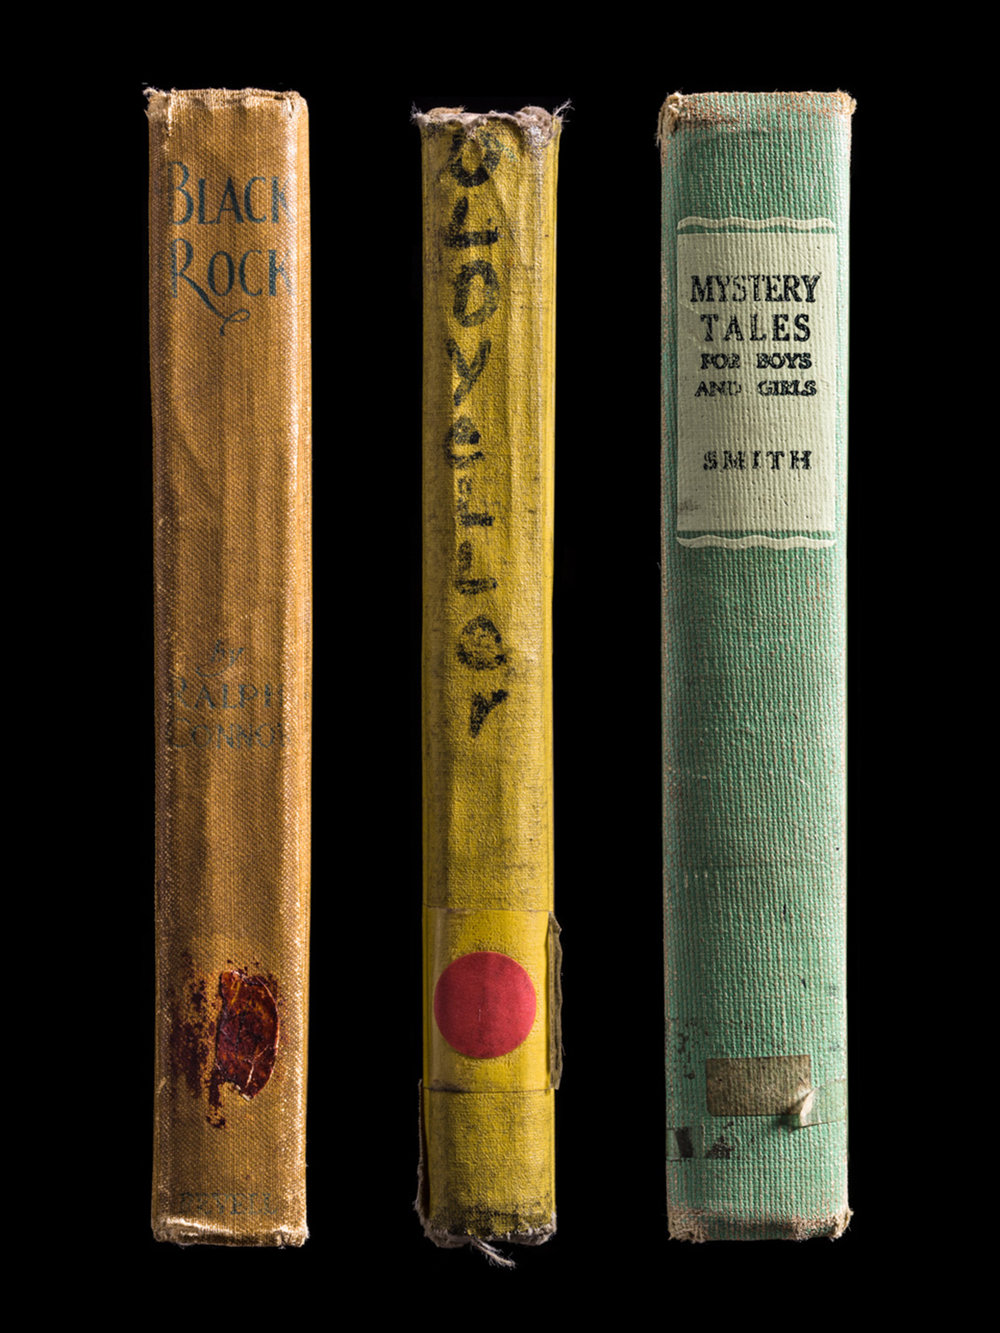 MultipleSpines, Black Rock, Old Yeller, Mystery Tales for Boys and Girls